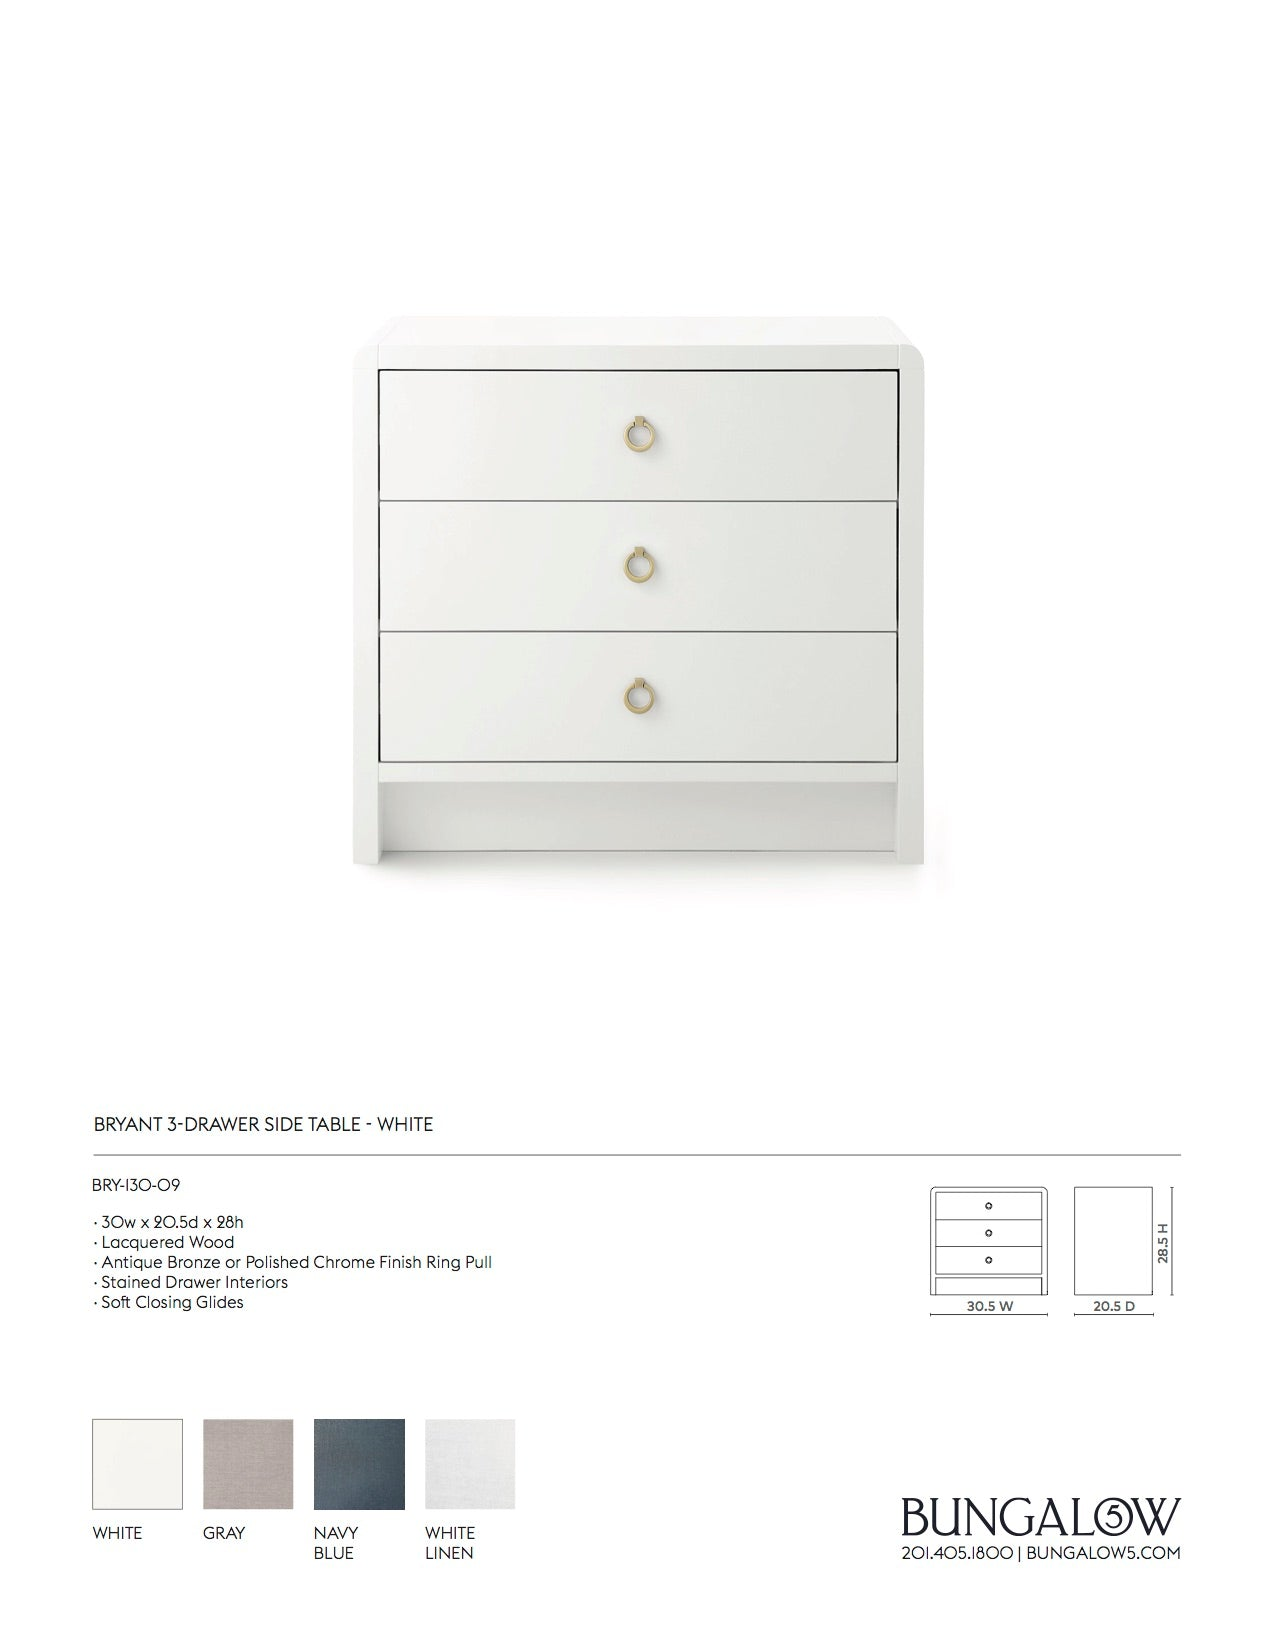 Bryant 3 Drawer Side Table White